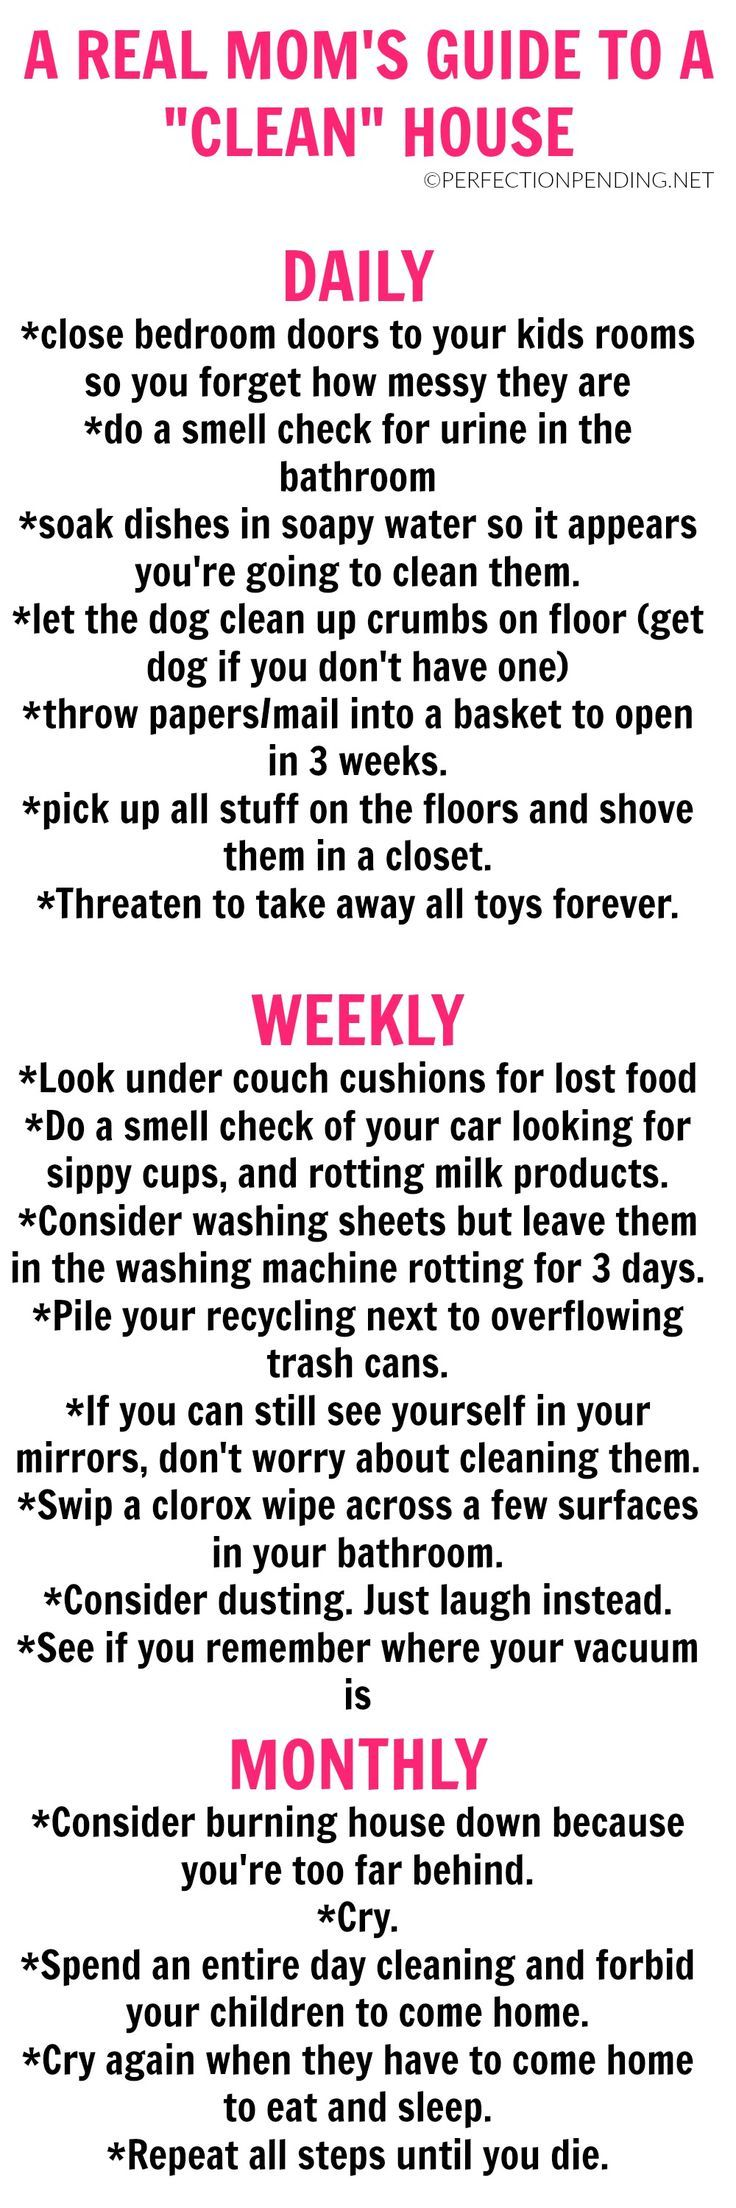 Are you looking for a realistic cleaning schedule you can follow to keep your house clean? Do you need tips for staying on top of a clean home? Then this hilarious guide for moms should be your go-to cleaning guide to help you stay organized. Or at least lower your expectations.